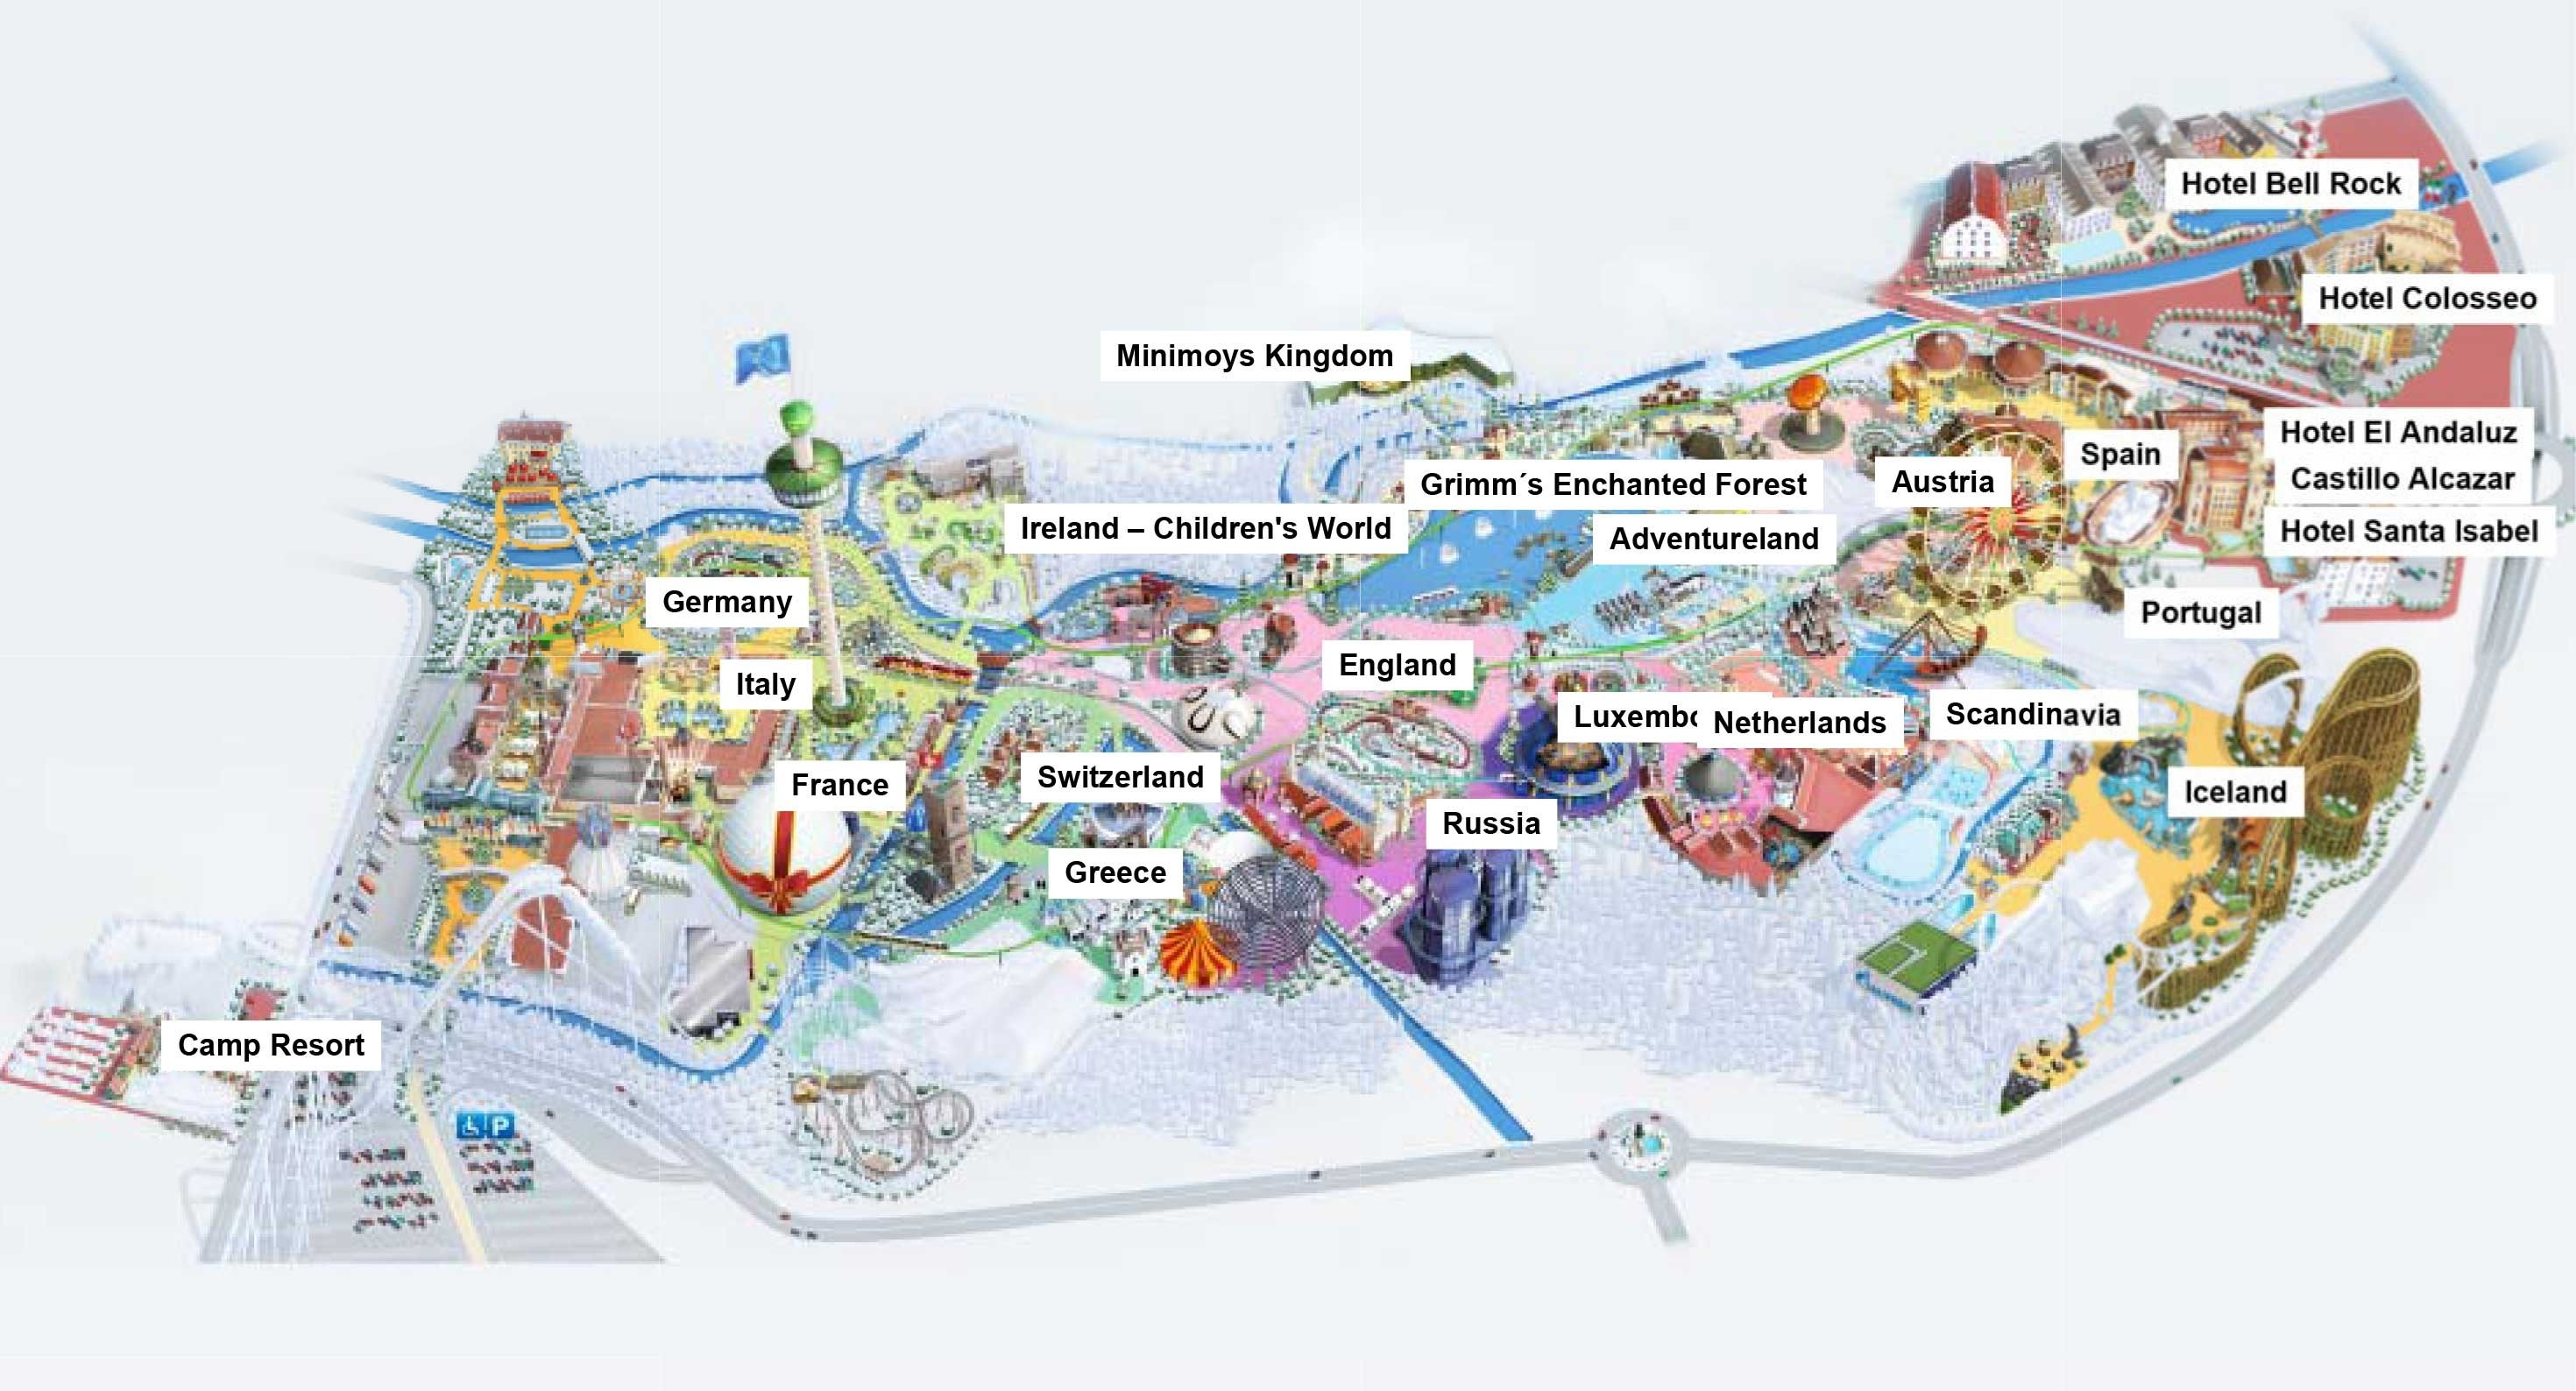 Europa-Park Germany Map Related Keywords & Suggestions - Europa-Park intended for Map Of Europa Park Germany